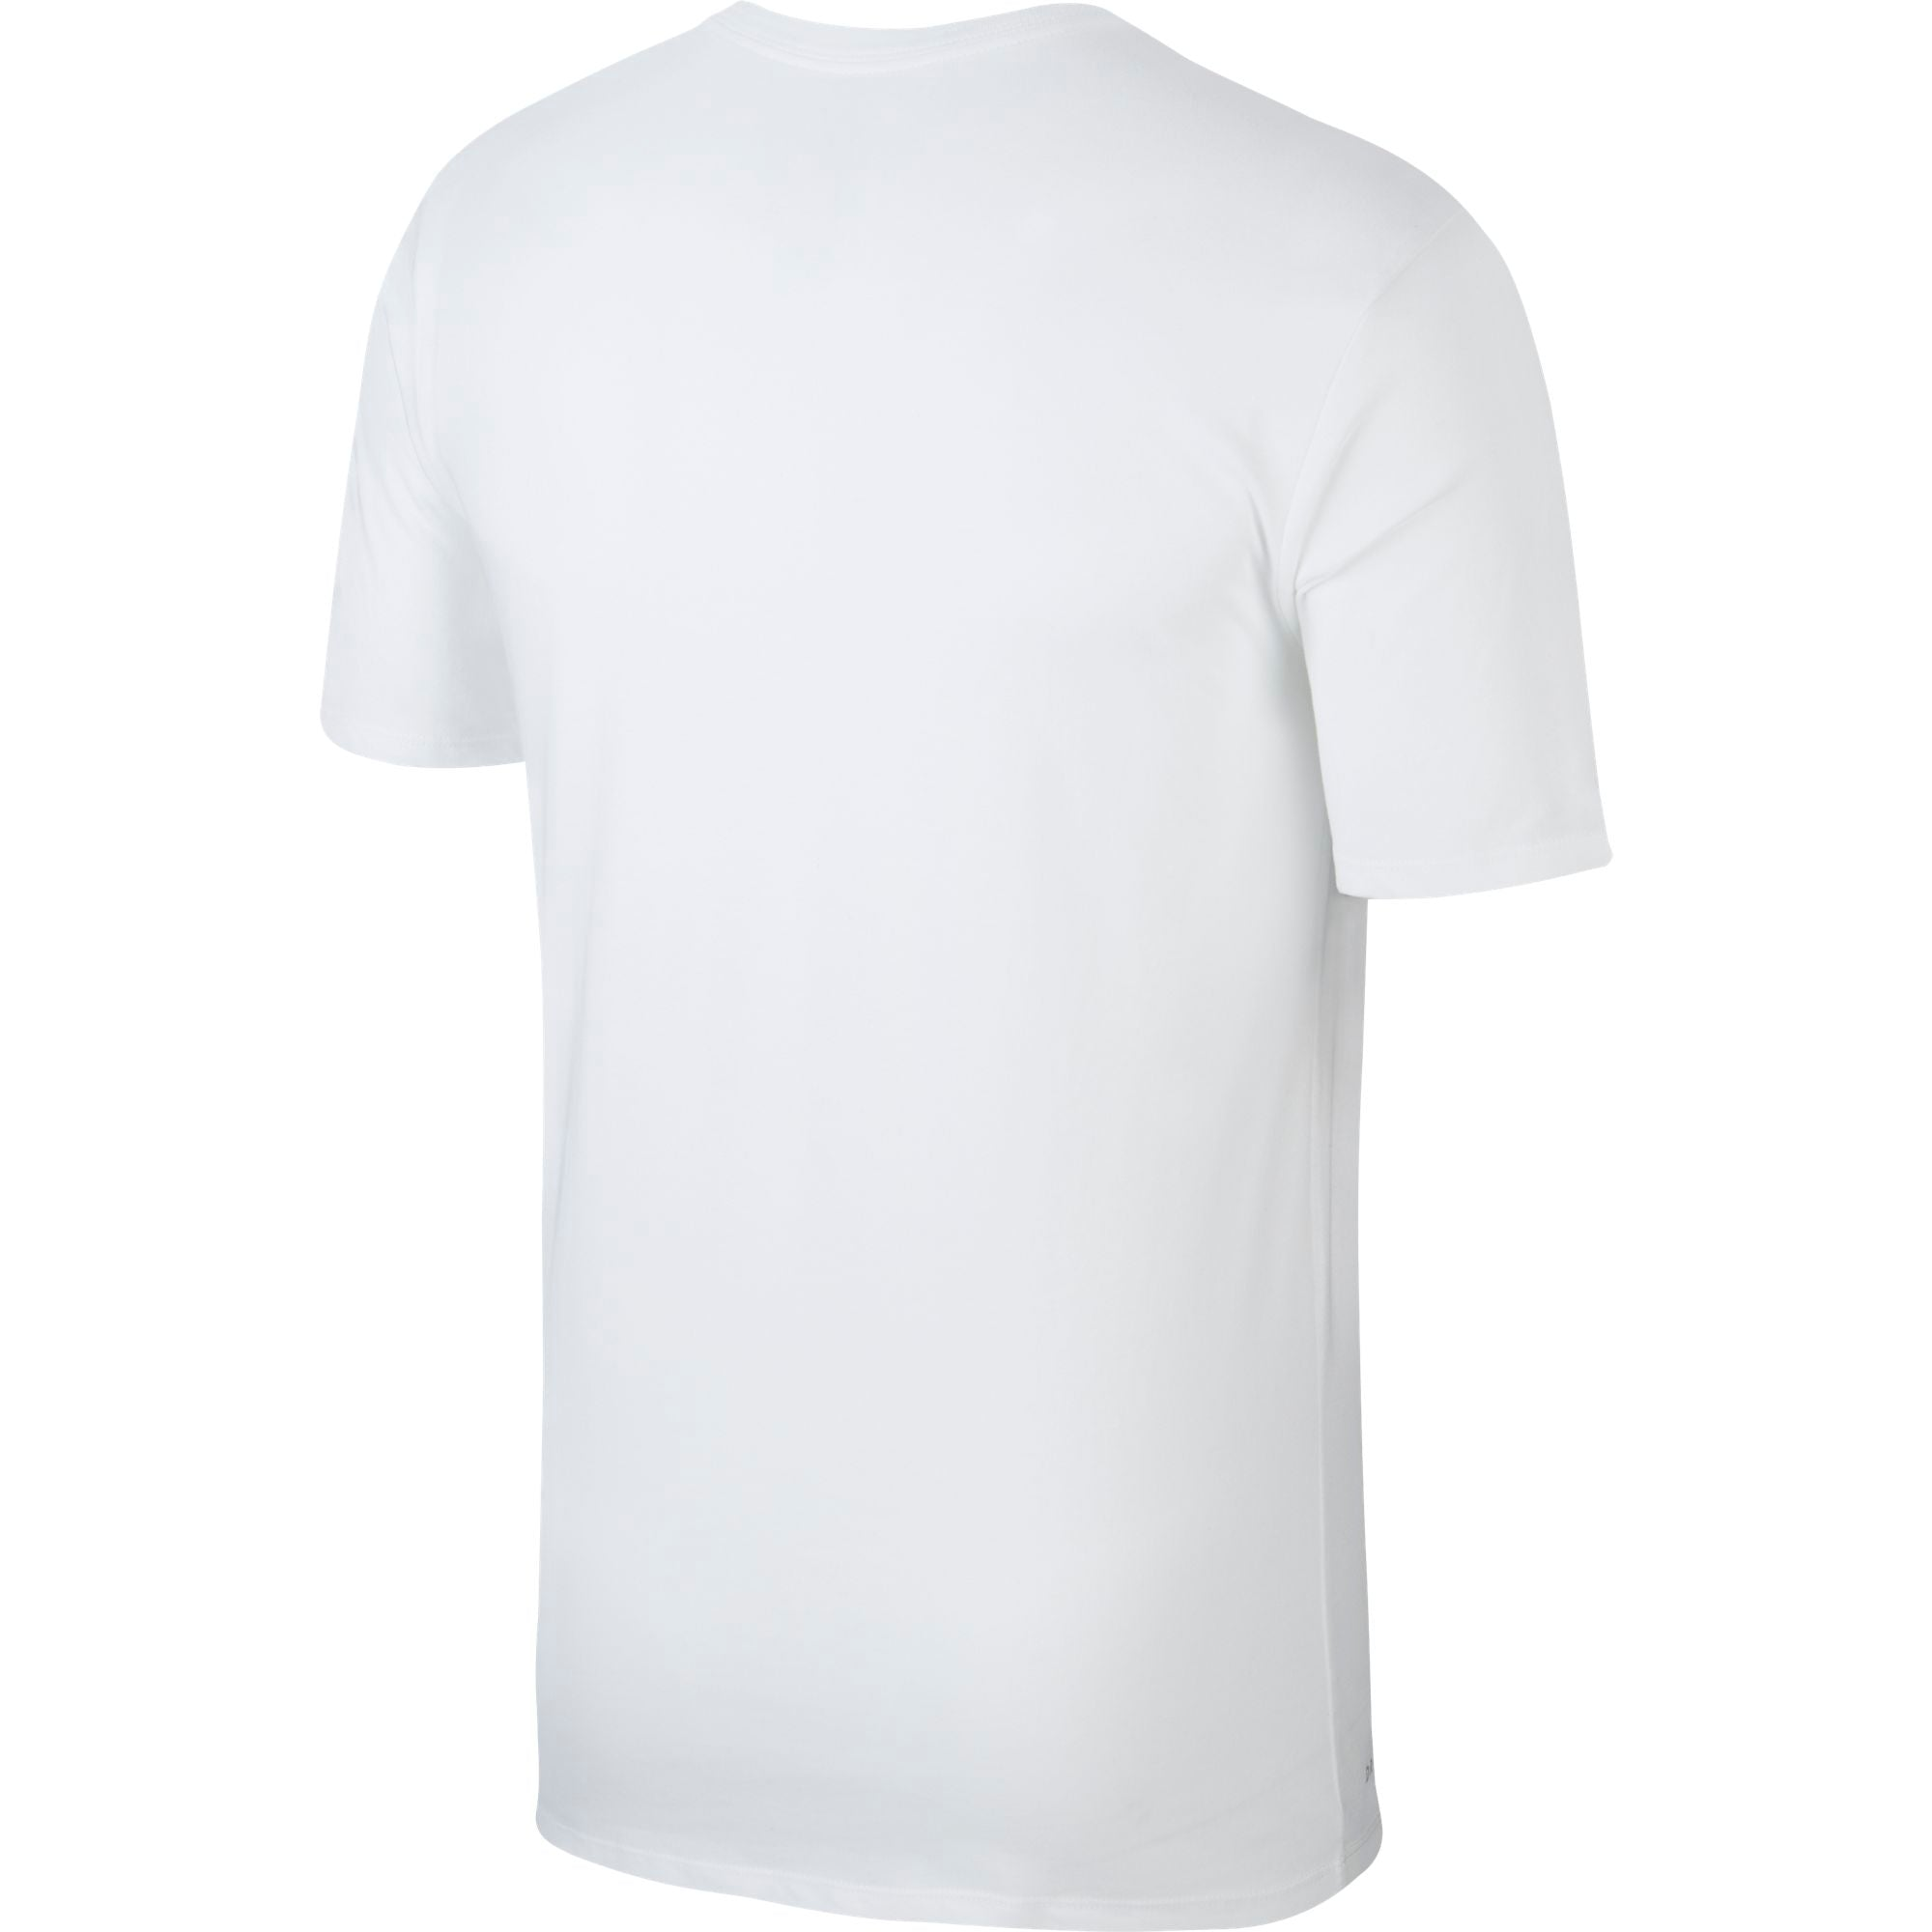 Nike Paul George Basketball Dry PG Tee - White